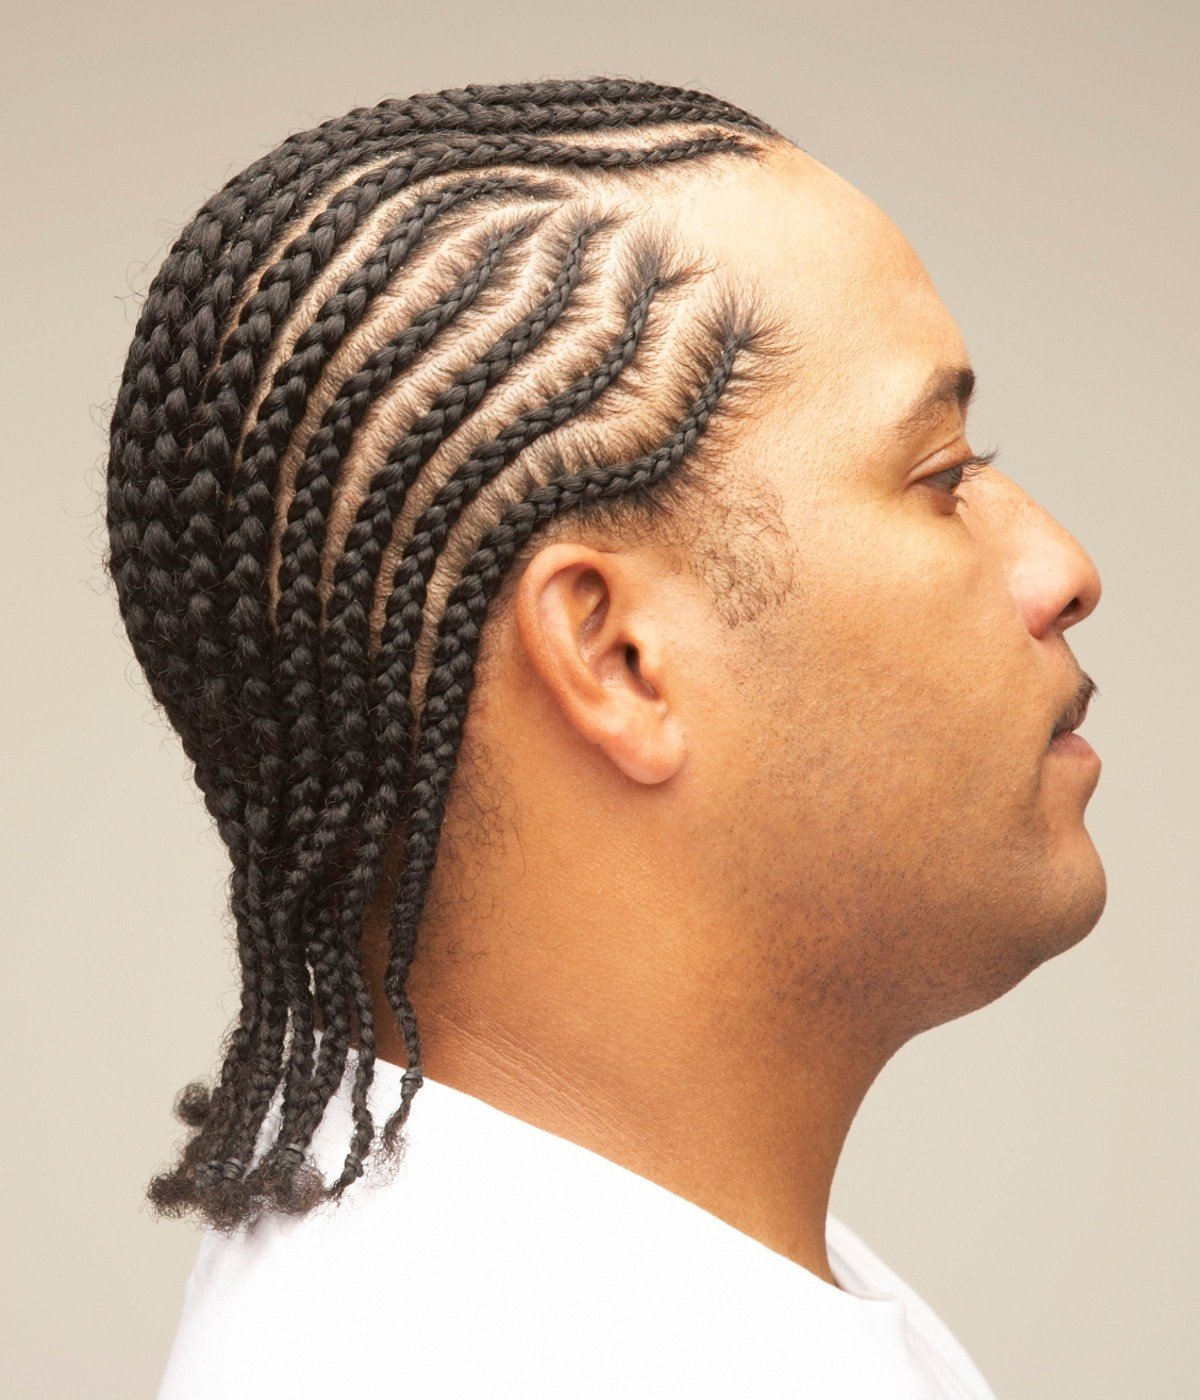 The Best Braided Hairstyles For Men That Will Catch Everyone S Eye Pictures